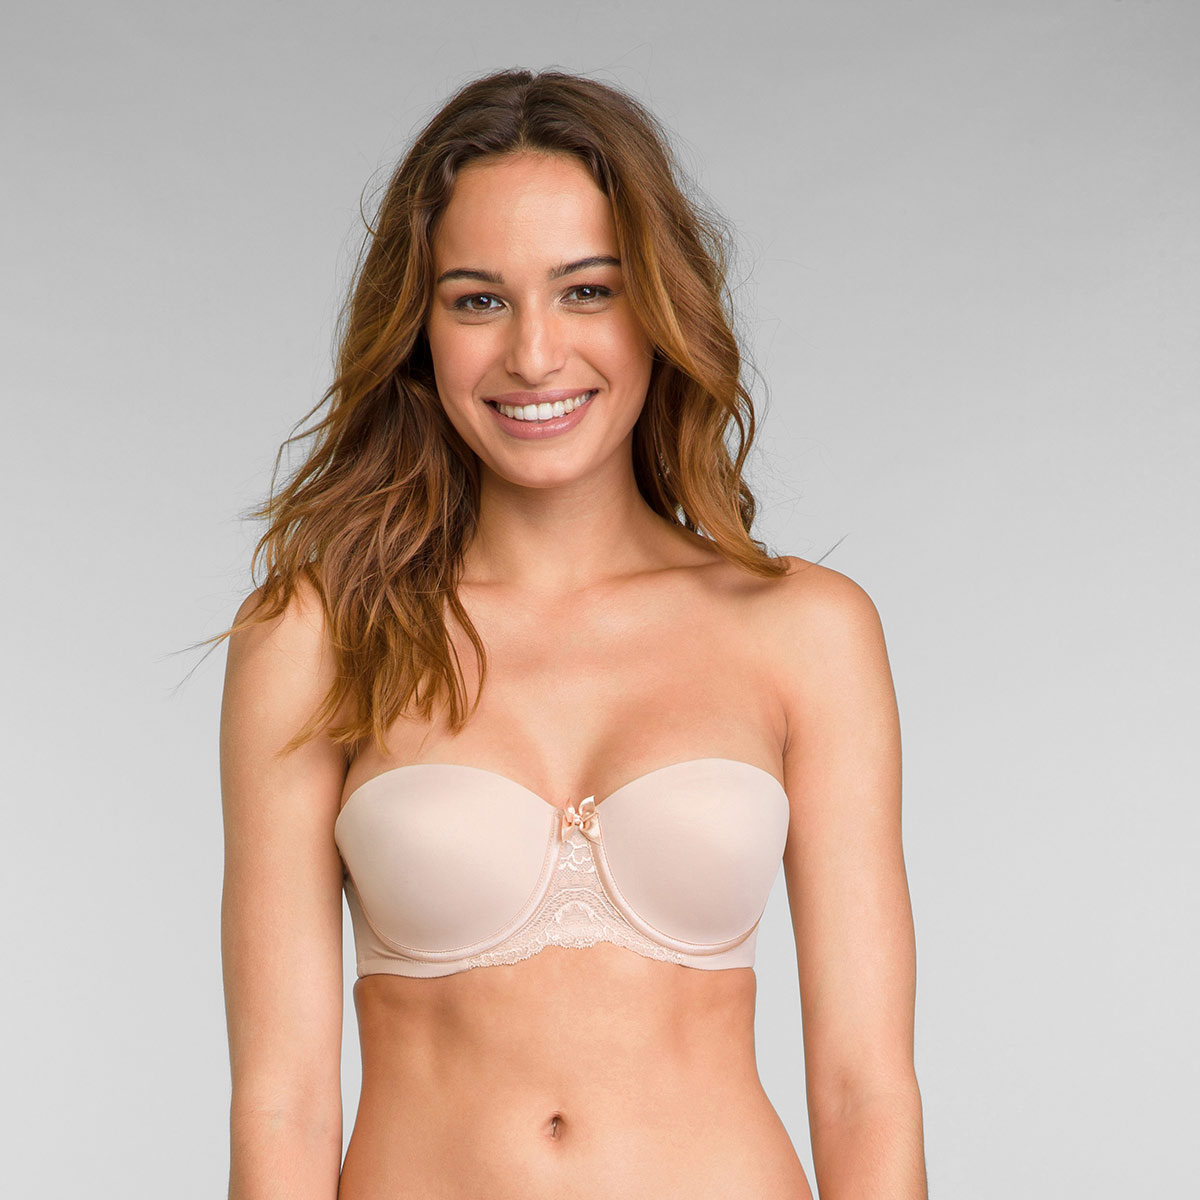 Strapless Bra in Nude Flower Elegance, , PLAYTEX